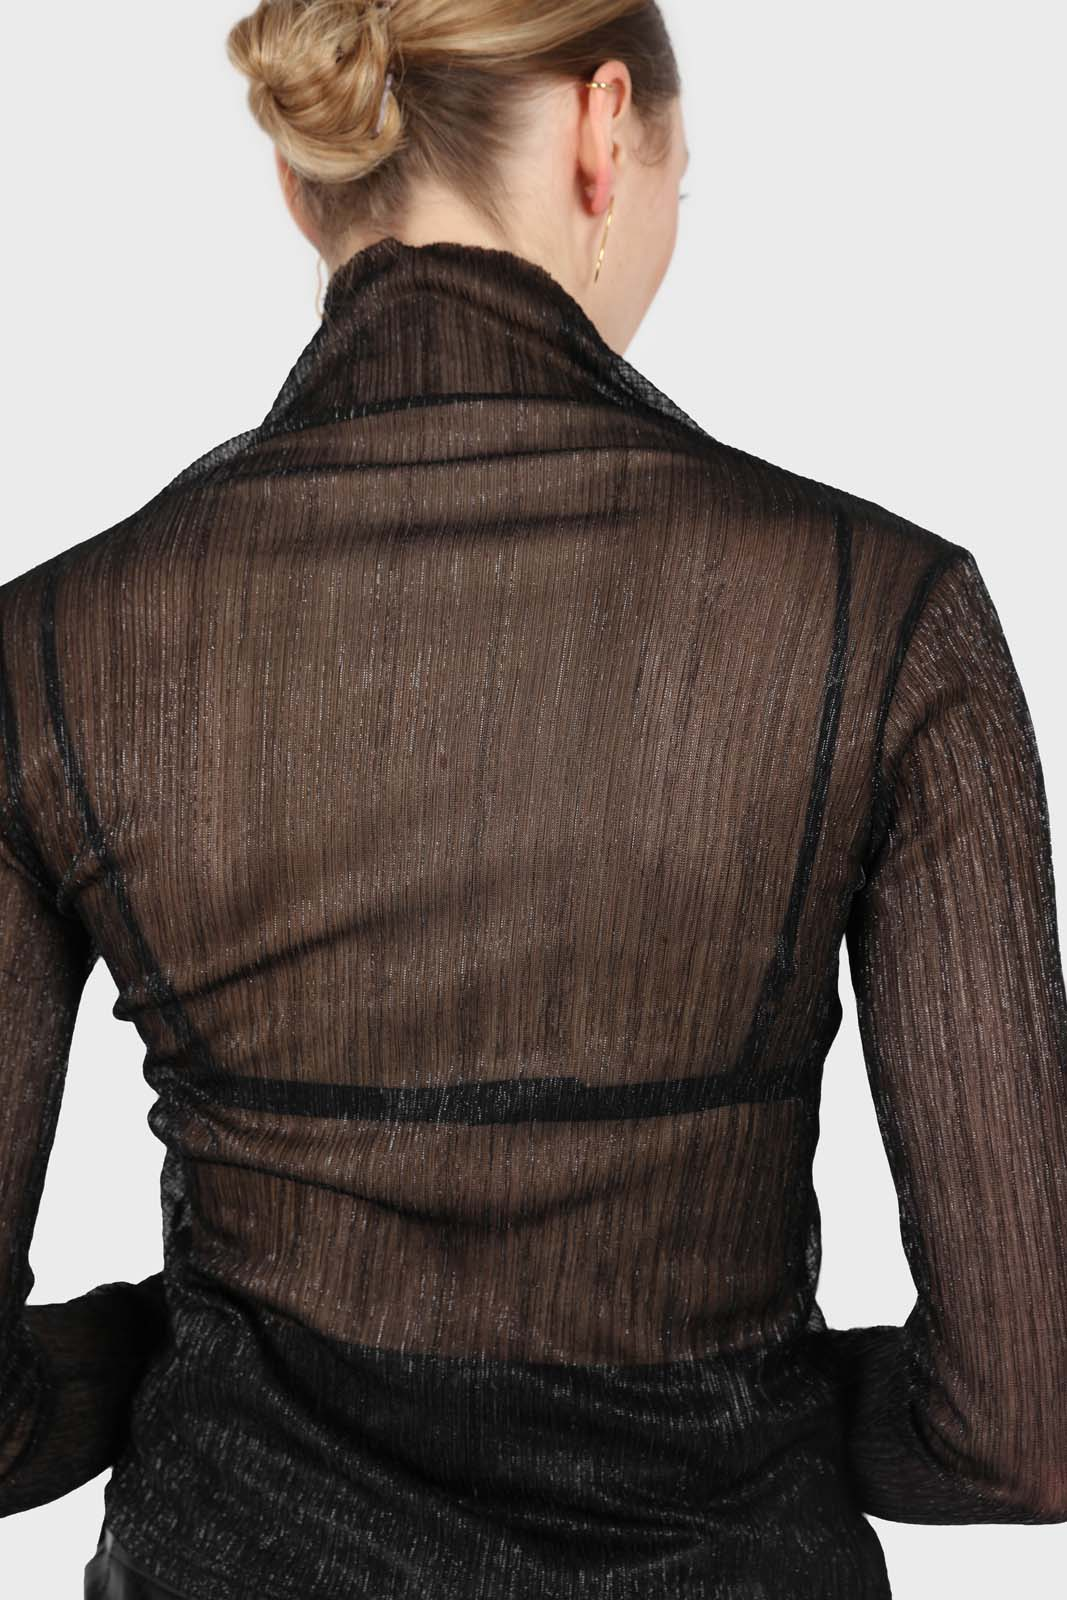 Black metallic sheer turtleneck top2